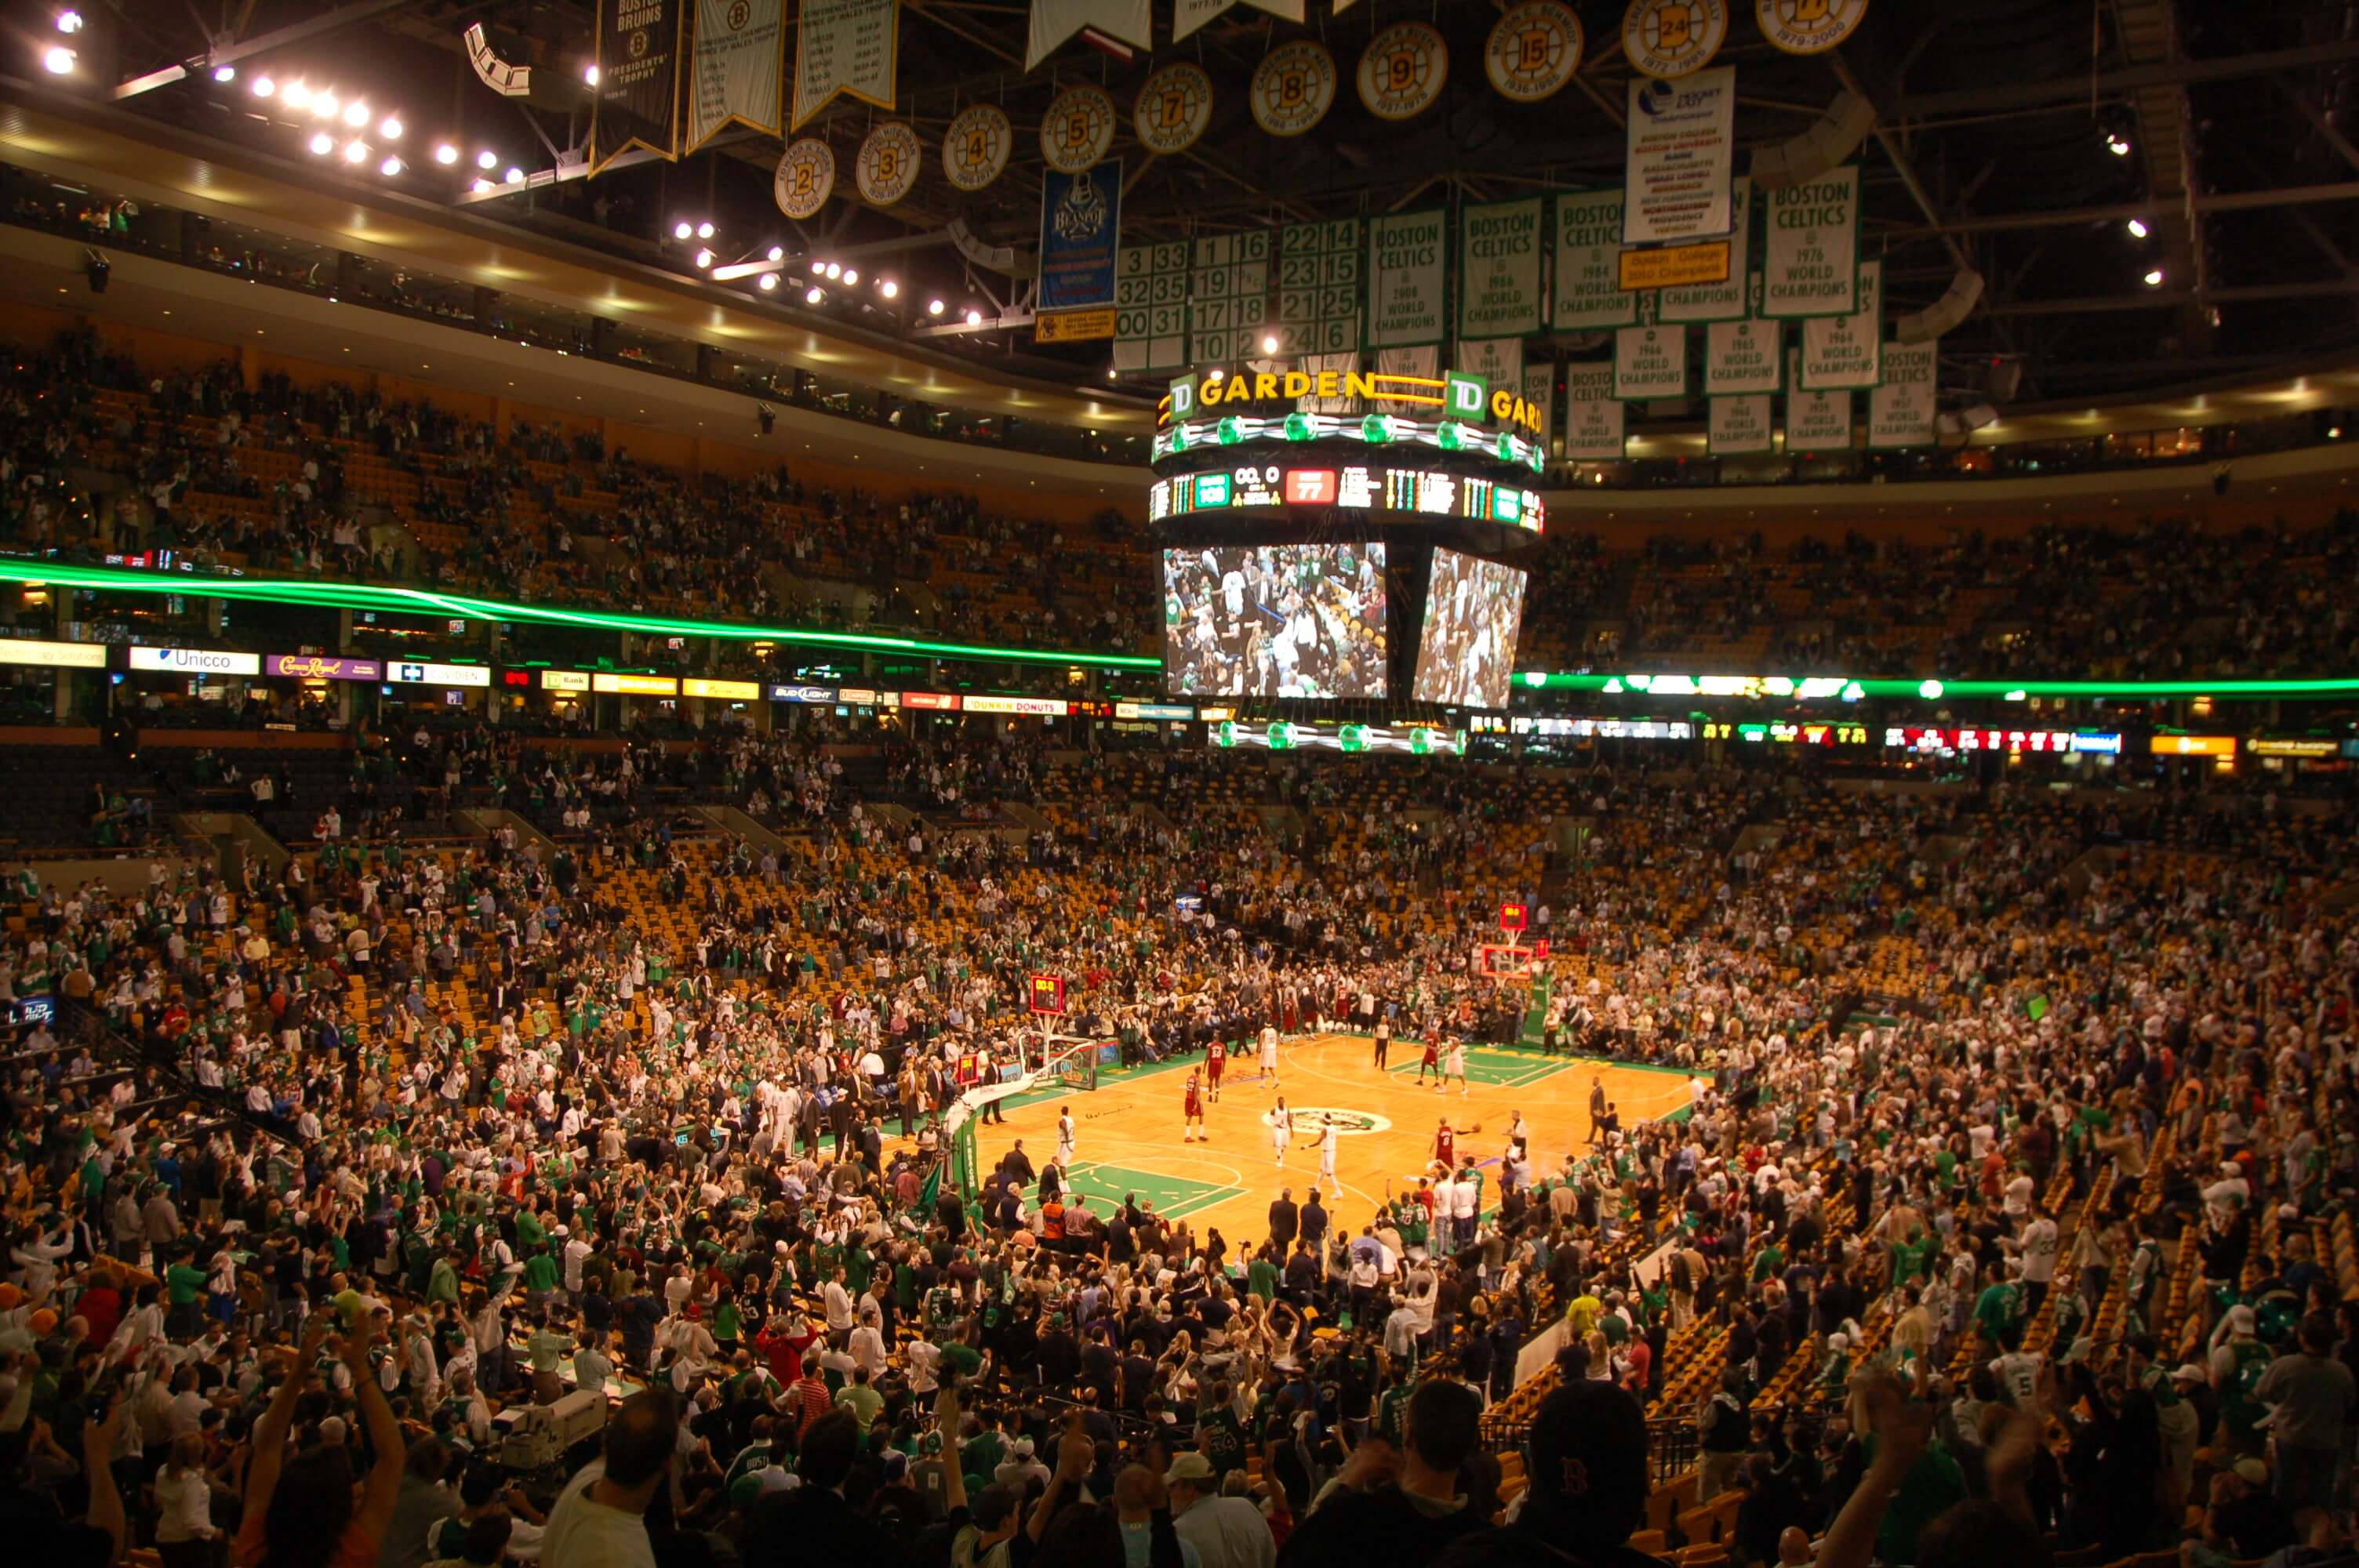 td garden Things to do in Boston